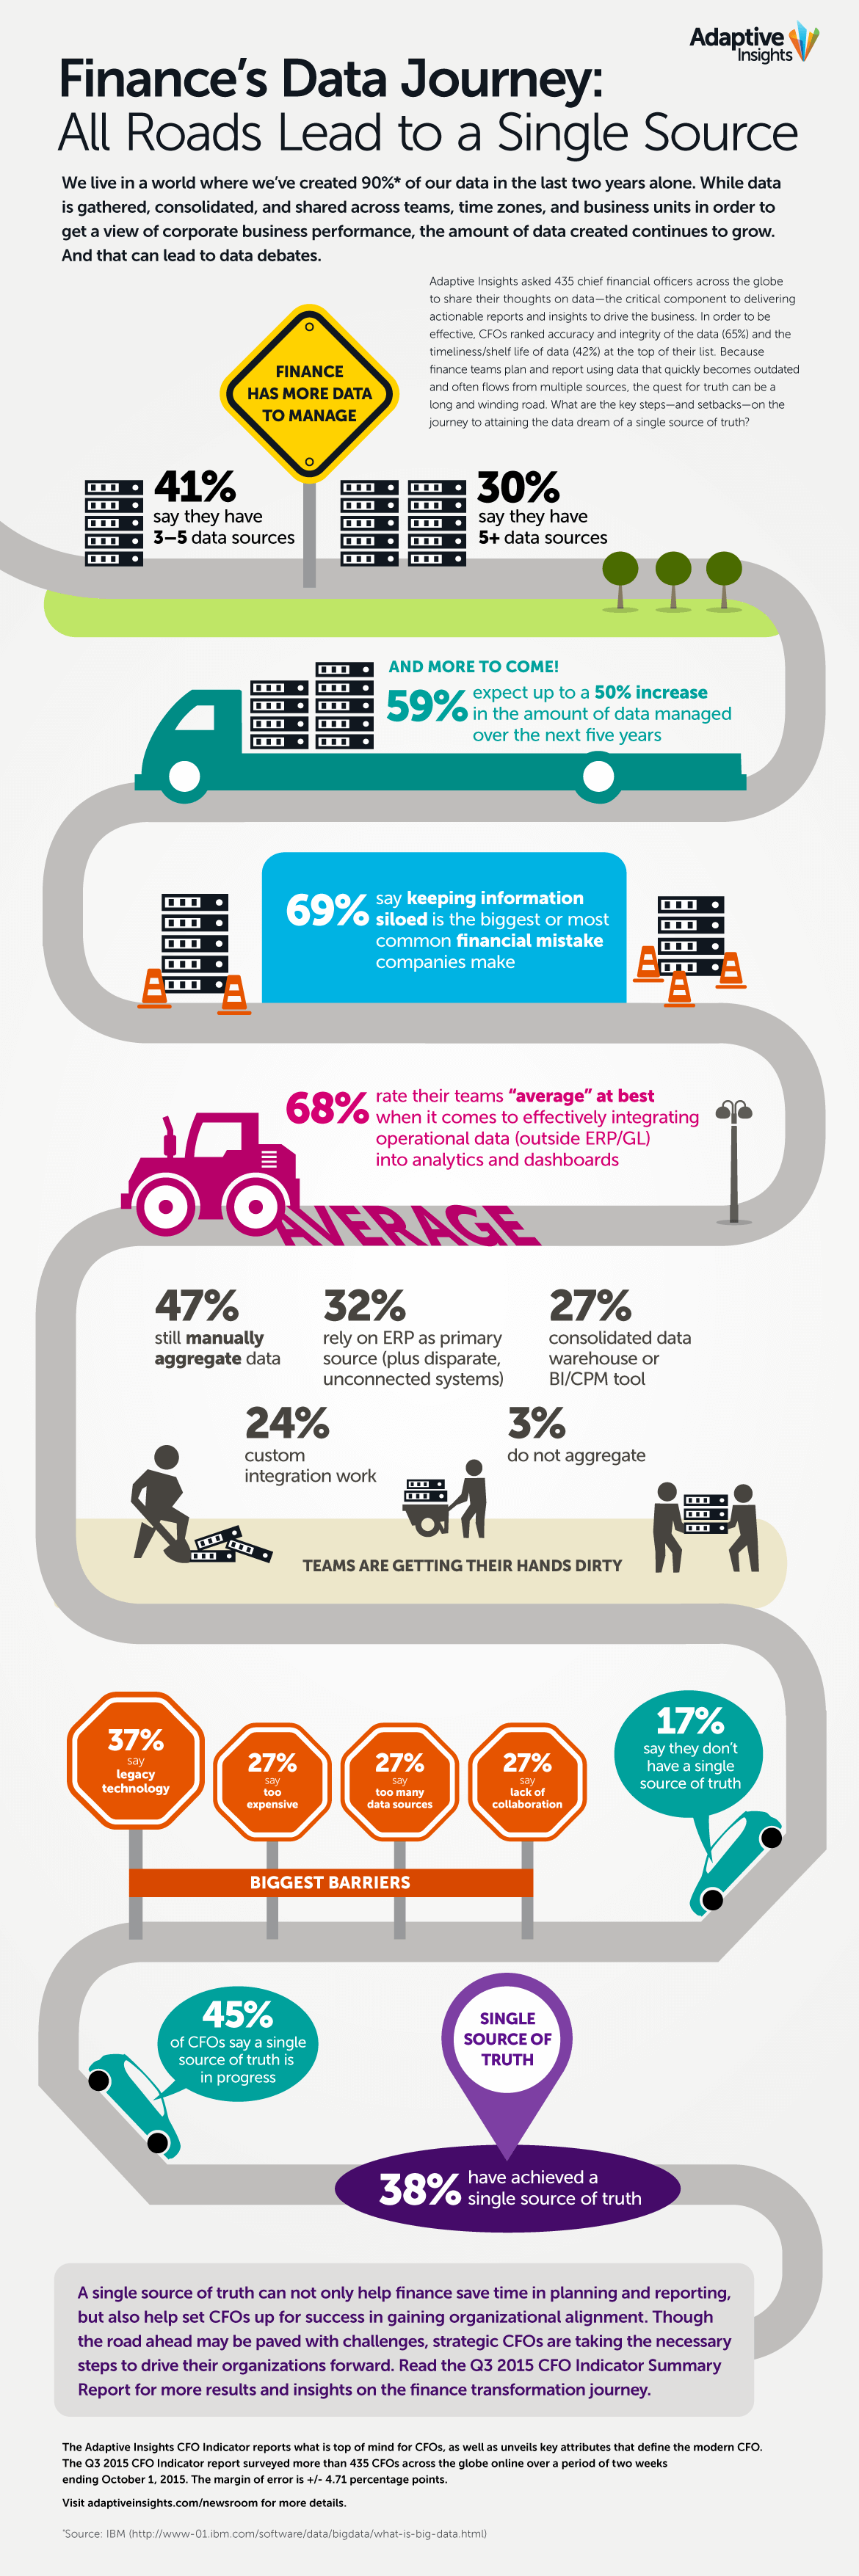 infographic-finance-data-journey-adaptive-insights.png